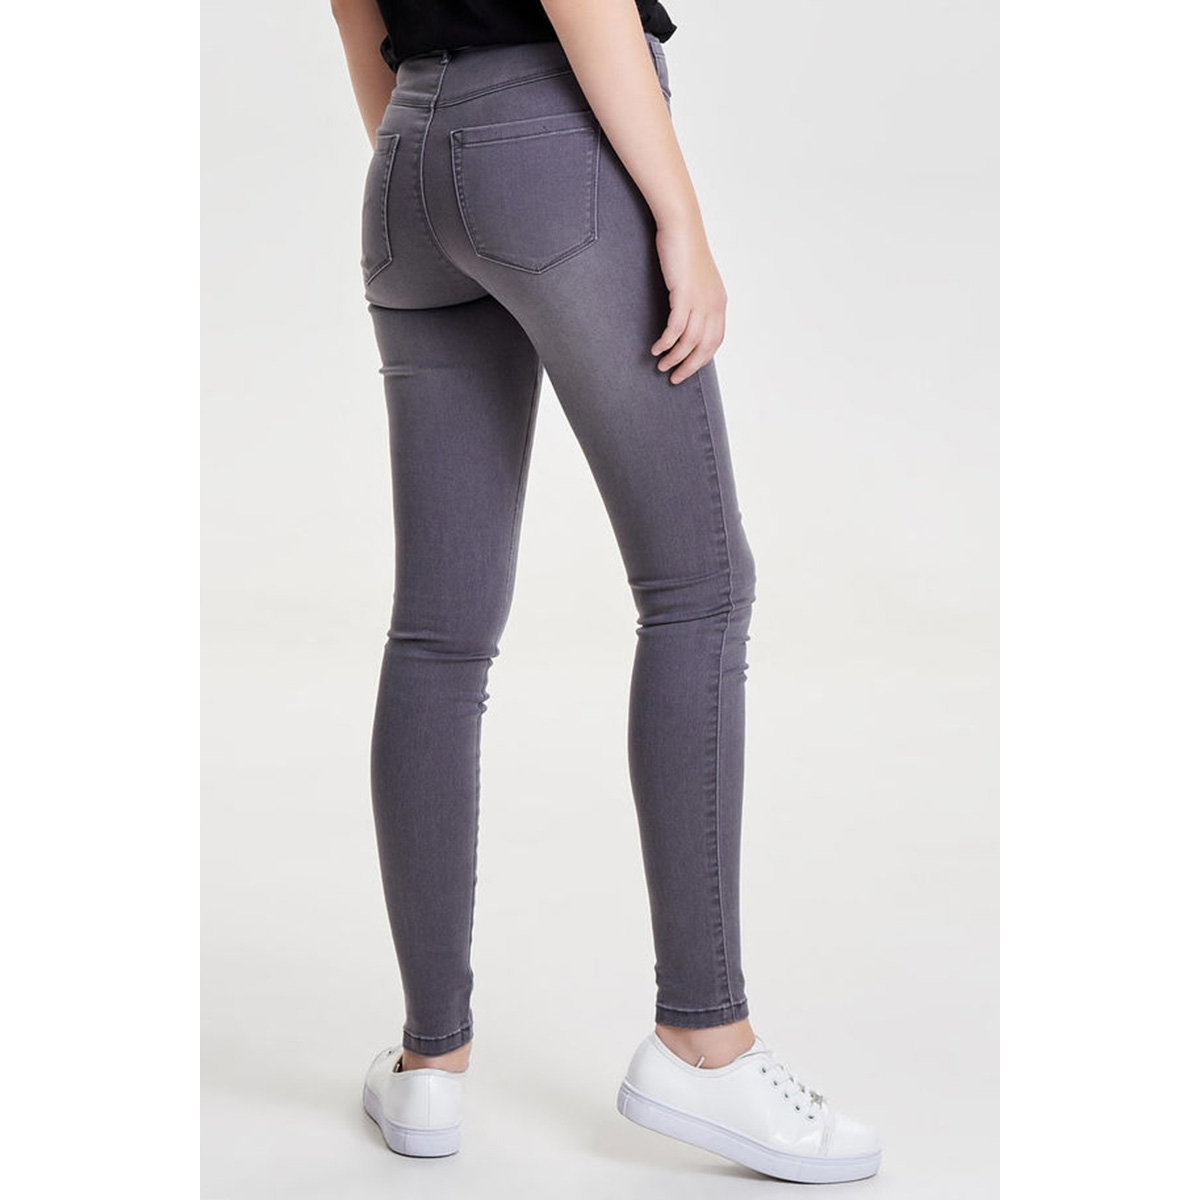 onlroyal high sk jeans grey pim900 15106783 only jeans medium grey denim